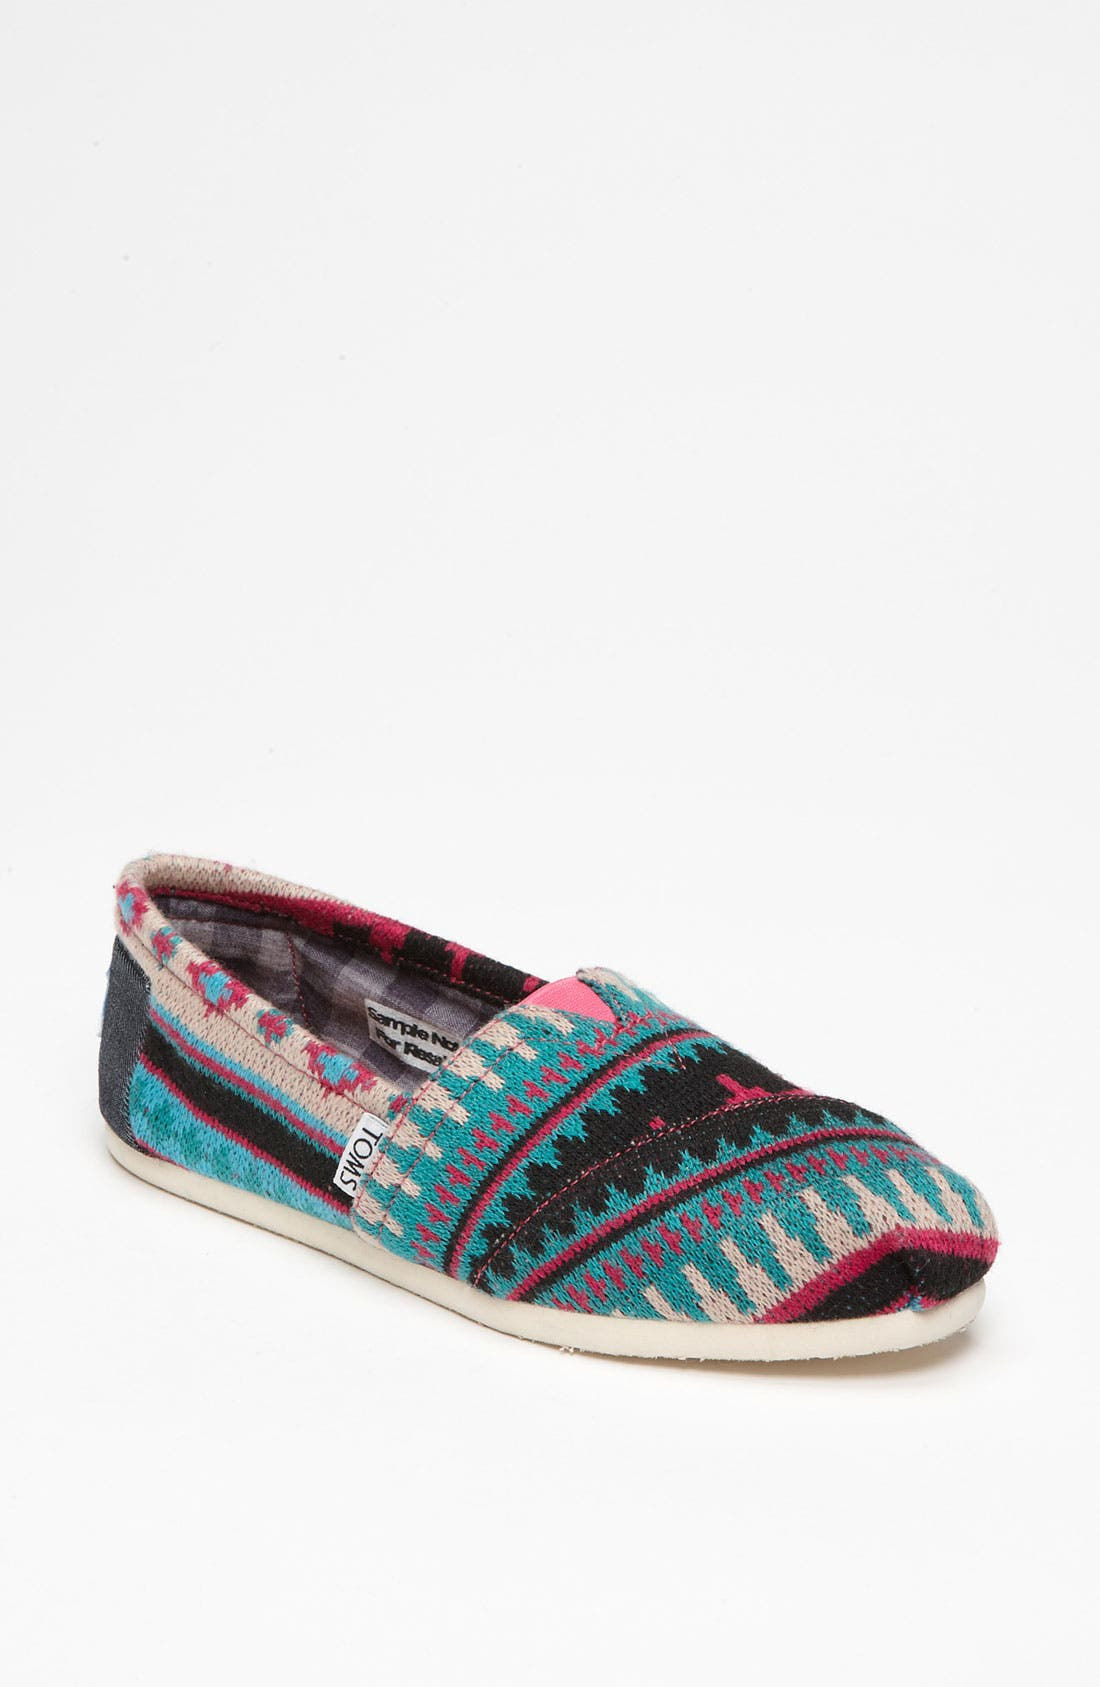 Alternate Image 1 Selected - TOMS 'Classic - Tamin' Slip-On (Women)